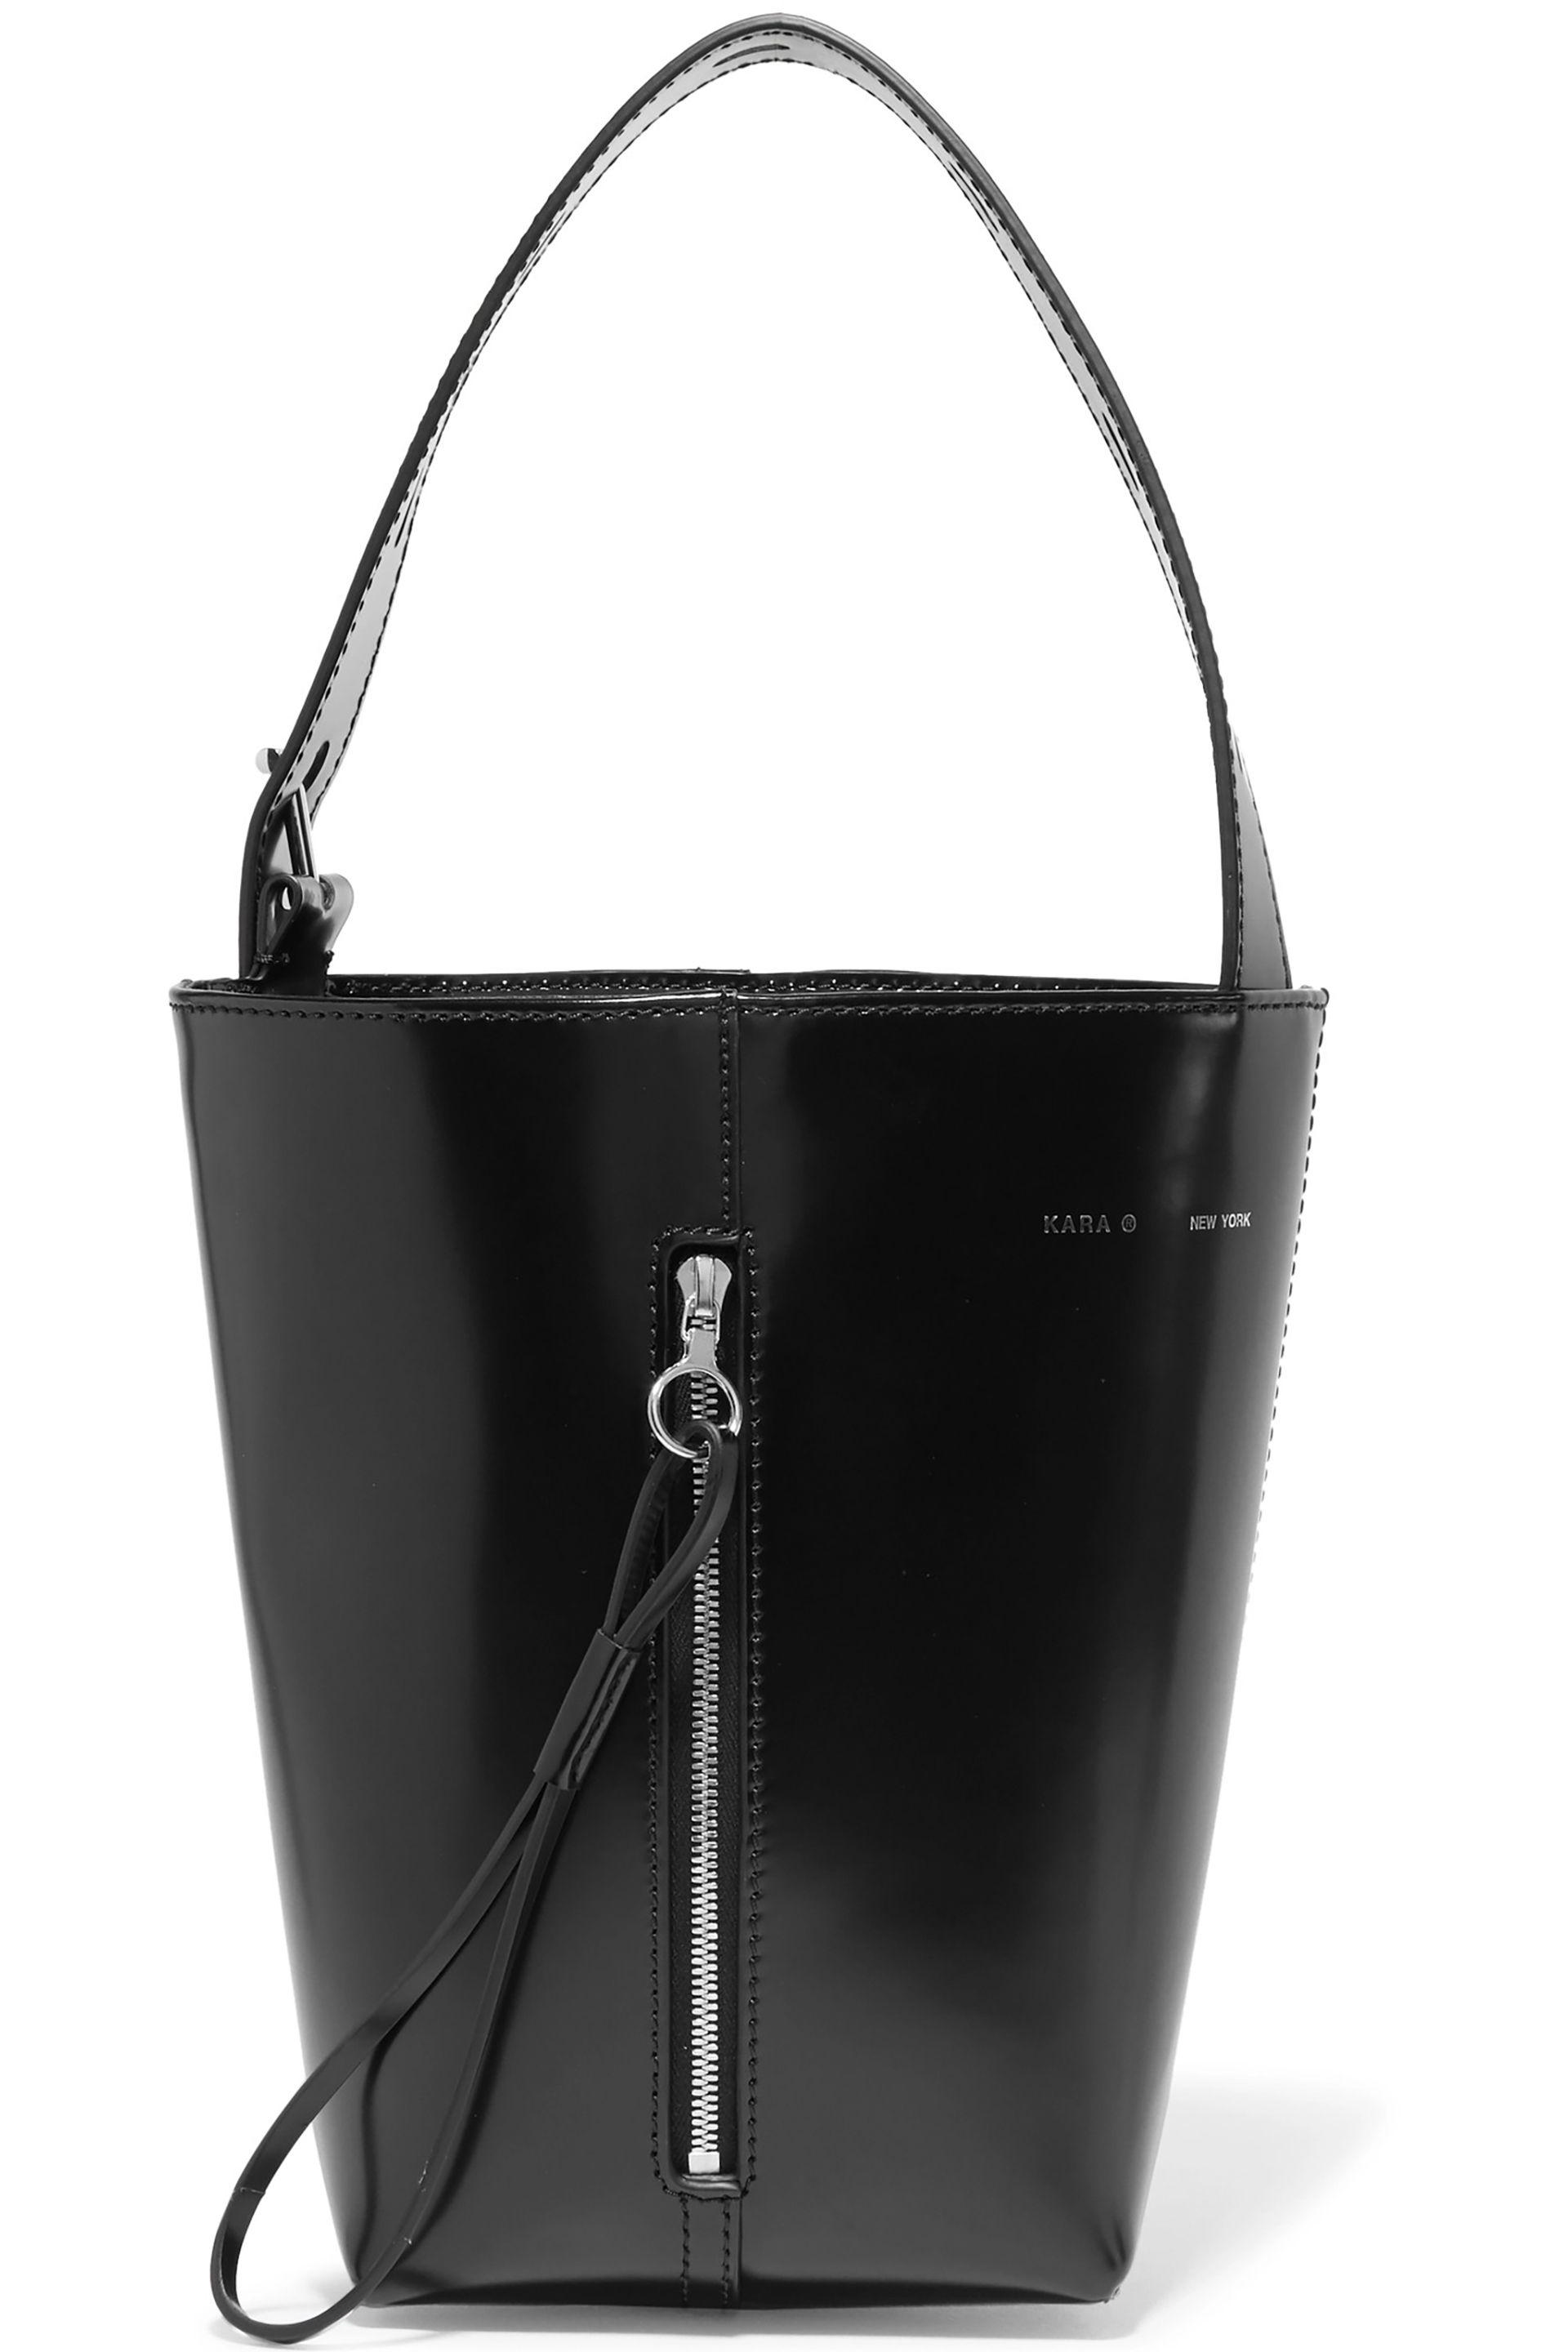 f34fa962a759 Kara Panel Pail Glossed-leather Bucket Bag in Black - Lyst